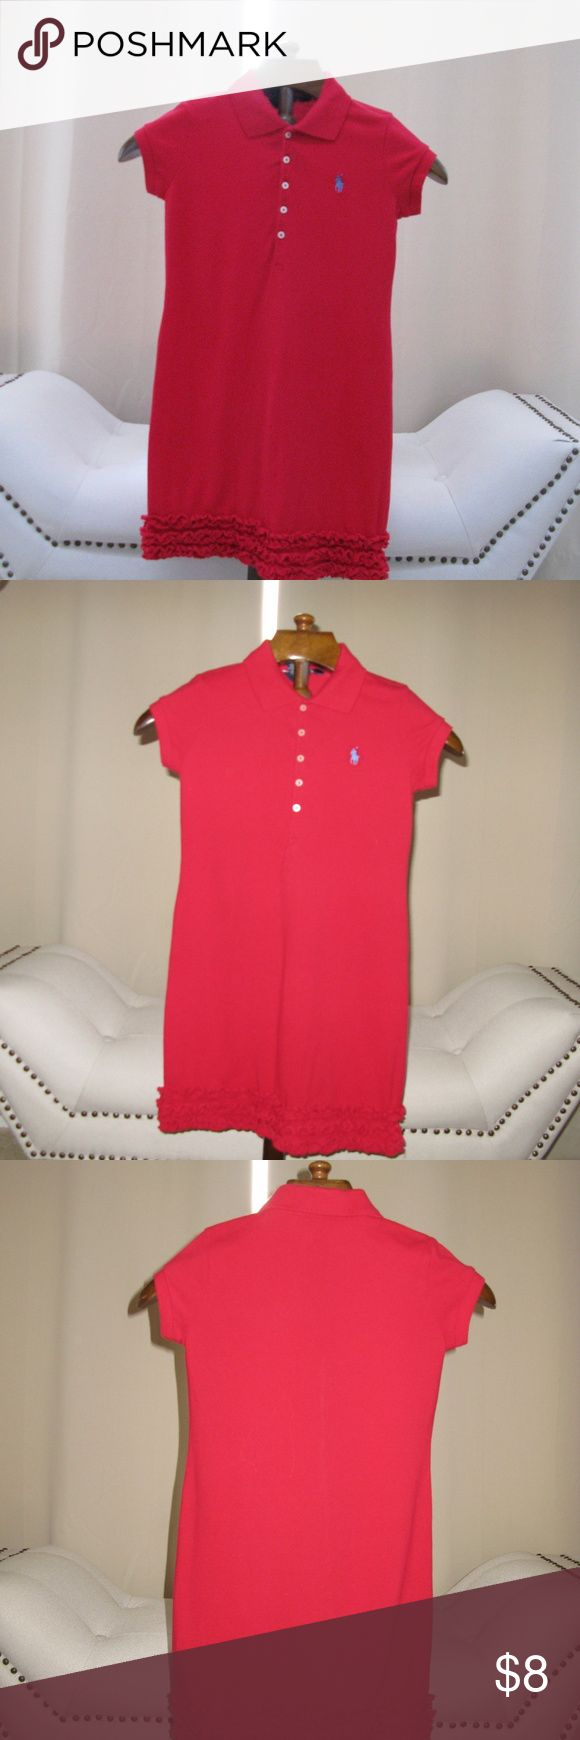 Girls IZOD Collared dress with ruffle Ready for School in this smart look.  IZOD Cherry Red Izod dress with button down collar and straight skirt with ruffle bottom.  This makes for a stylish, effortless look. Size on label 8/10. Izod Dresses Casual